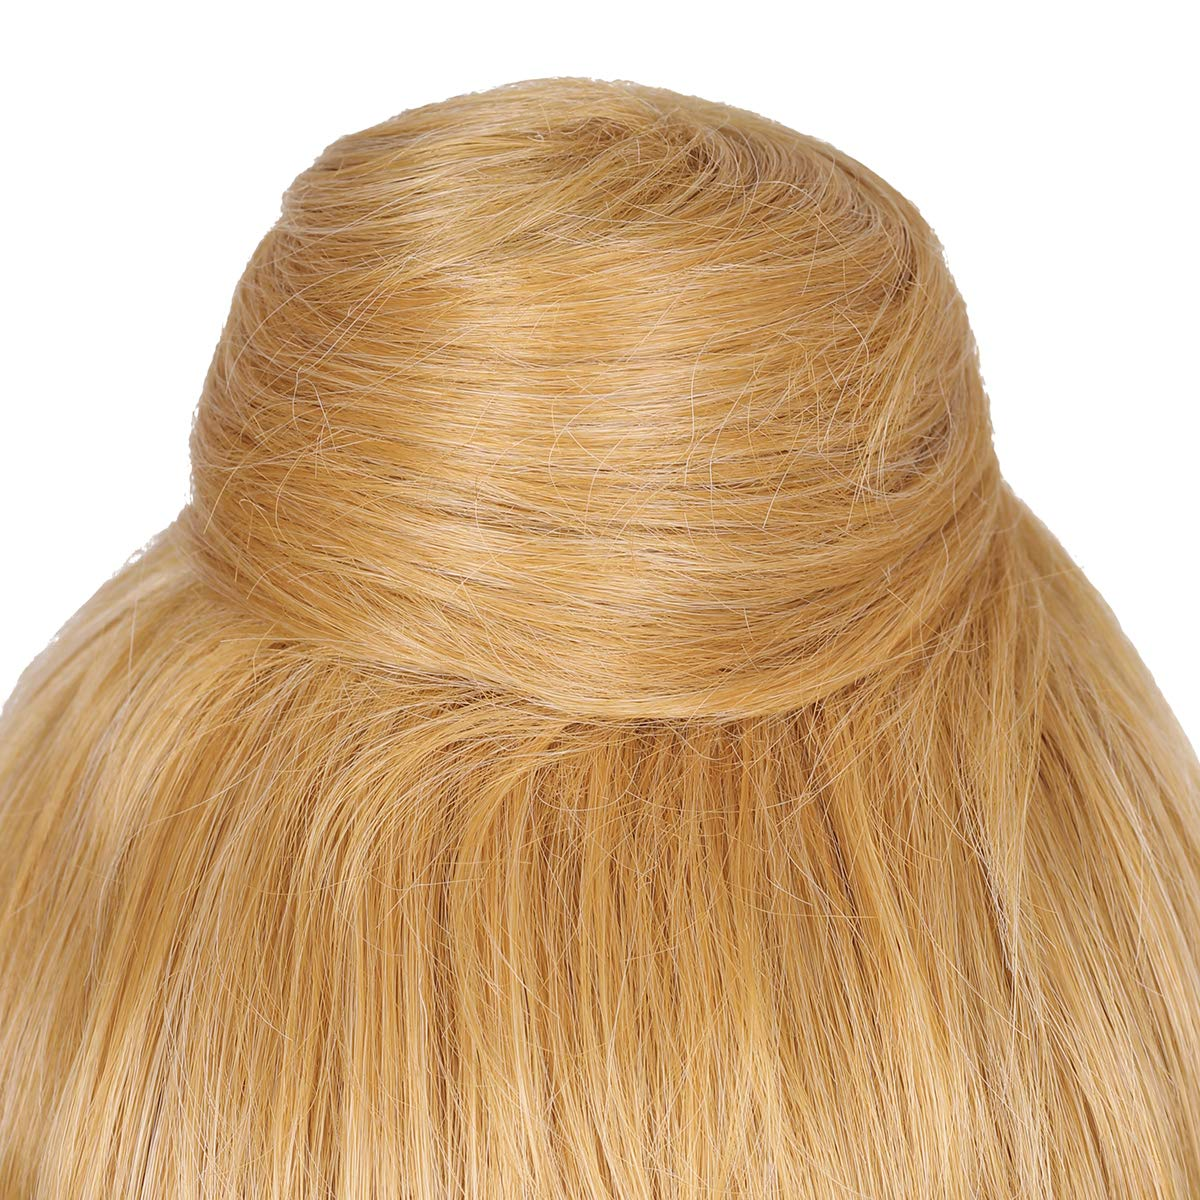 ColorGround Women/'s Long Wavy Brown Prestyled Cosplay Costume Wig with Detachable Bun